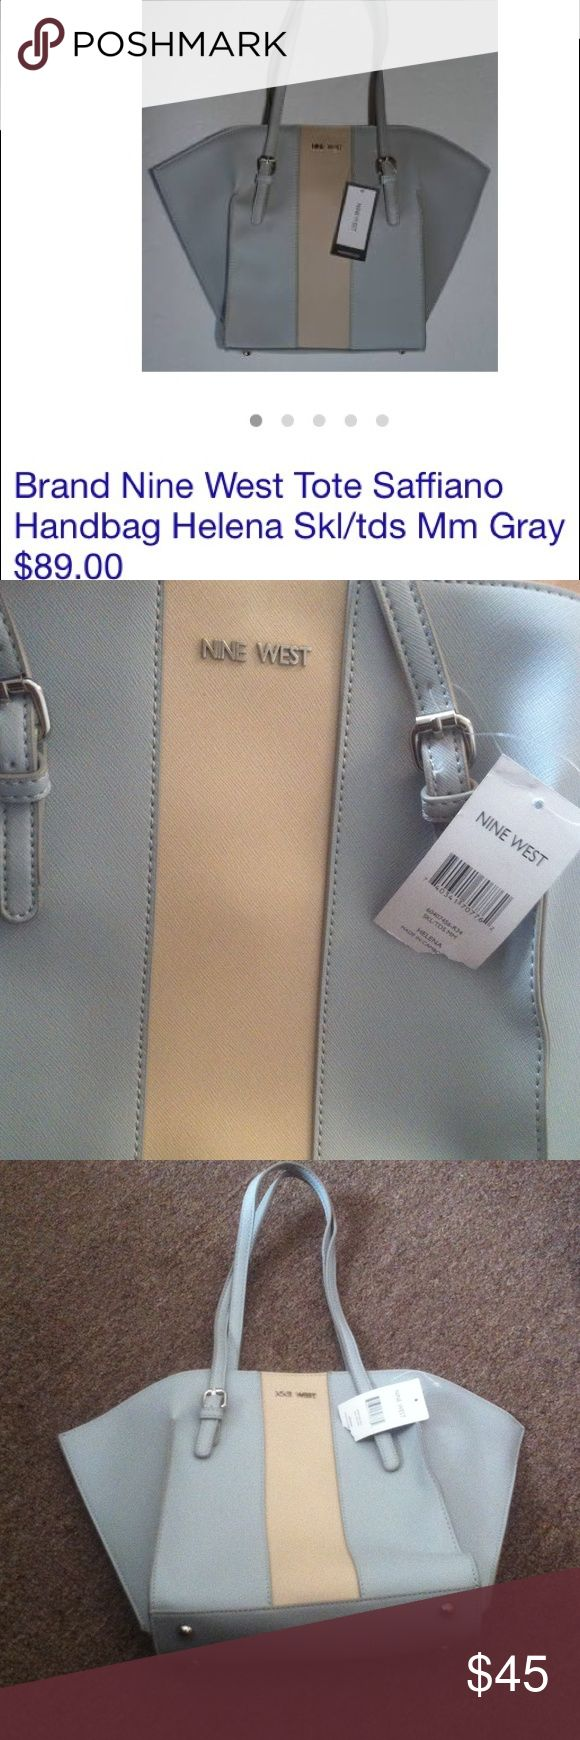 ☀️Nine West Tote Bag 🌞Nine West HELENA Tote Bag! Nice bag for a summer or spring season 😇 NEW WITH TAGS! ⭐️⭐️⭐️  ➡️➡️➡️ Willing to NEGOTIATE price if it's reasonable! Nine West Bags Totes